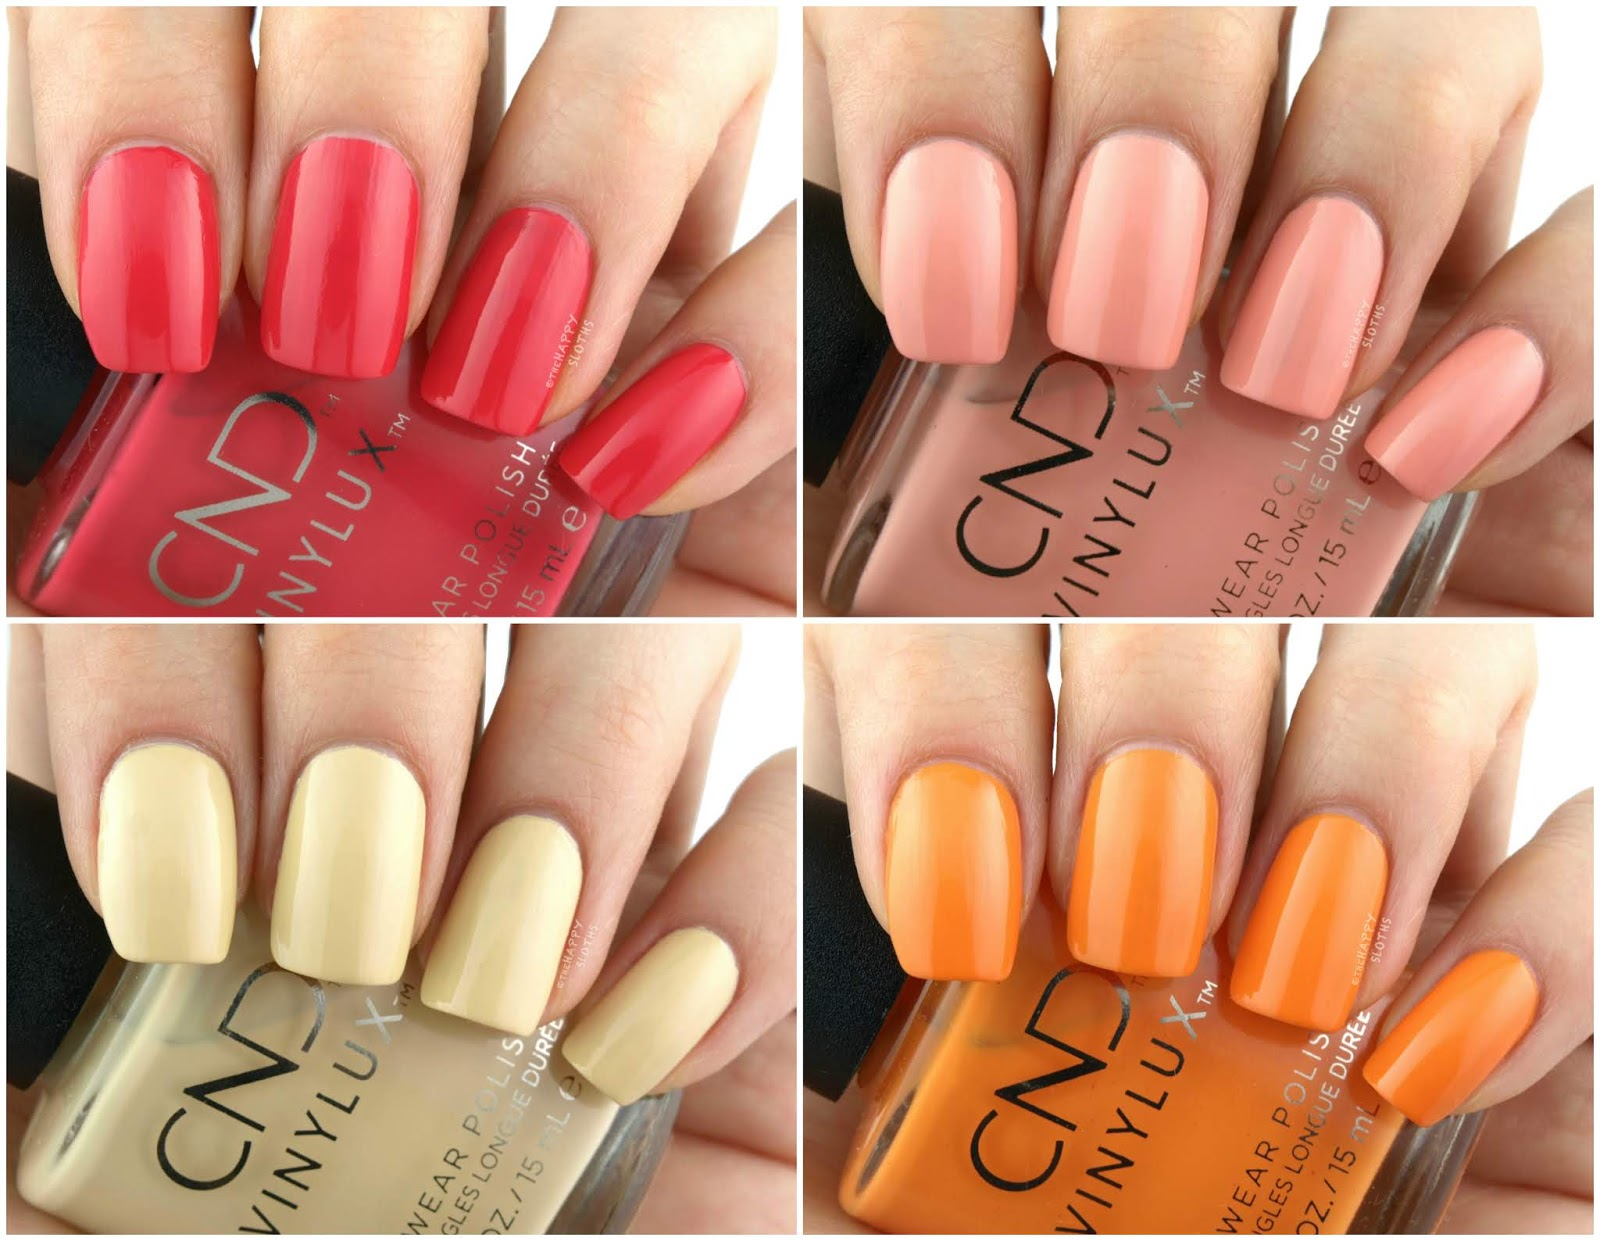 CND | Summer 2018 Boho Spirit Collection: Review and Swatches